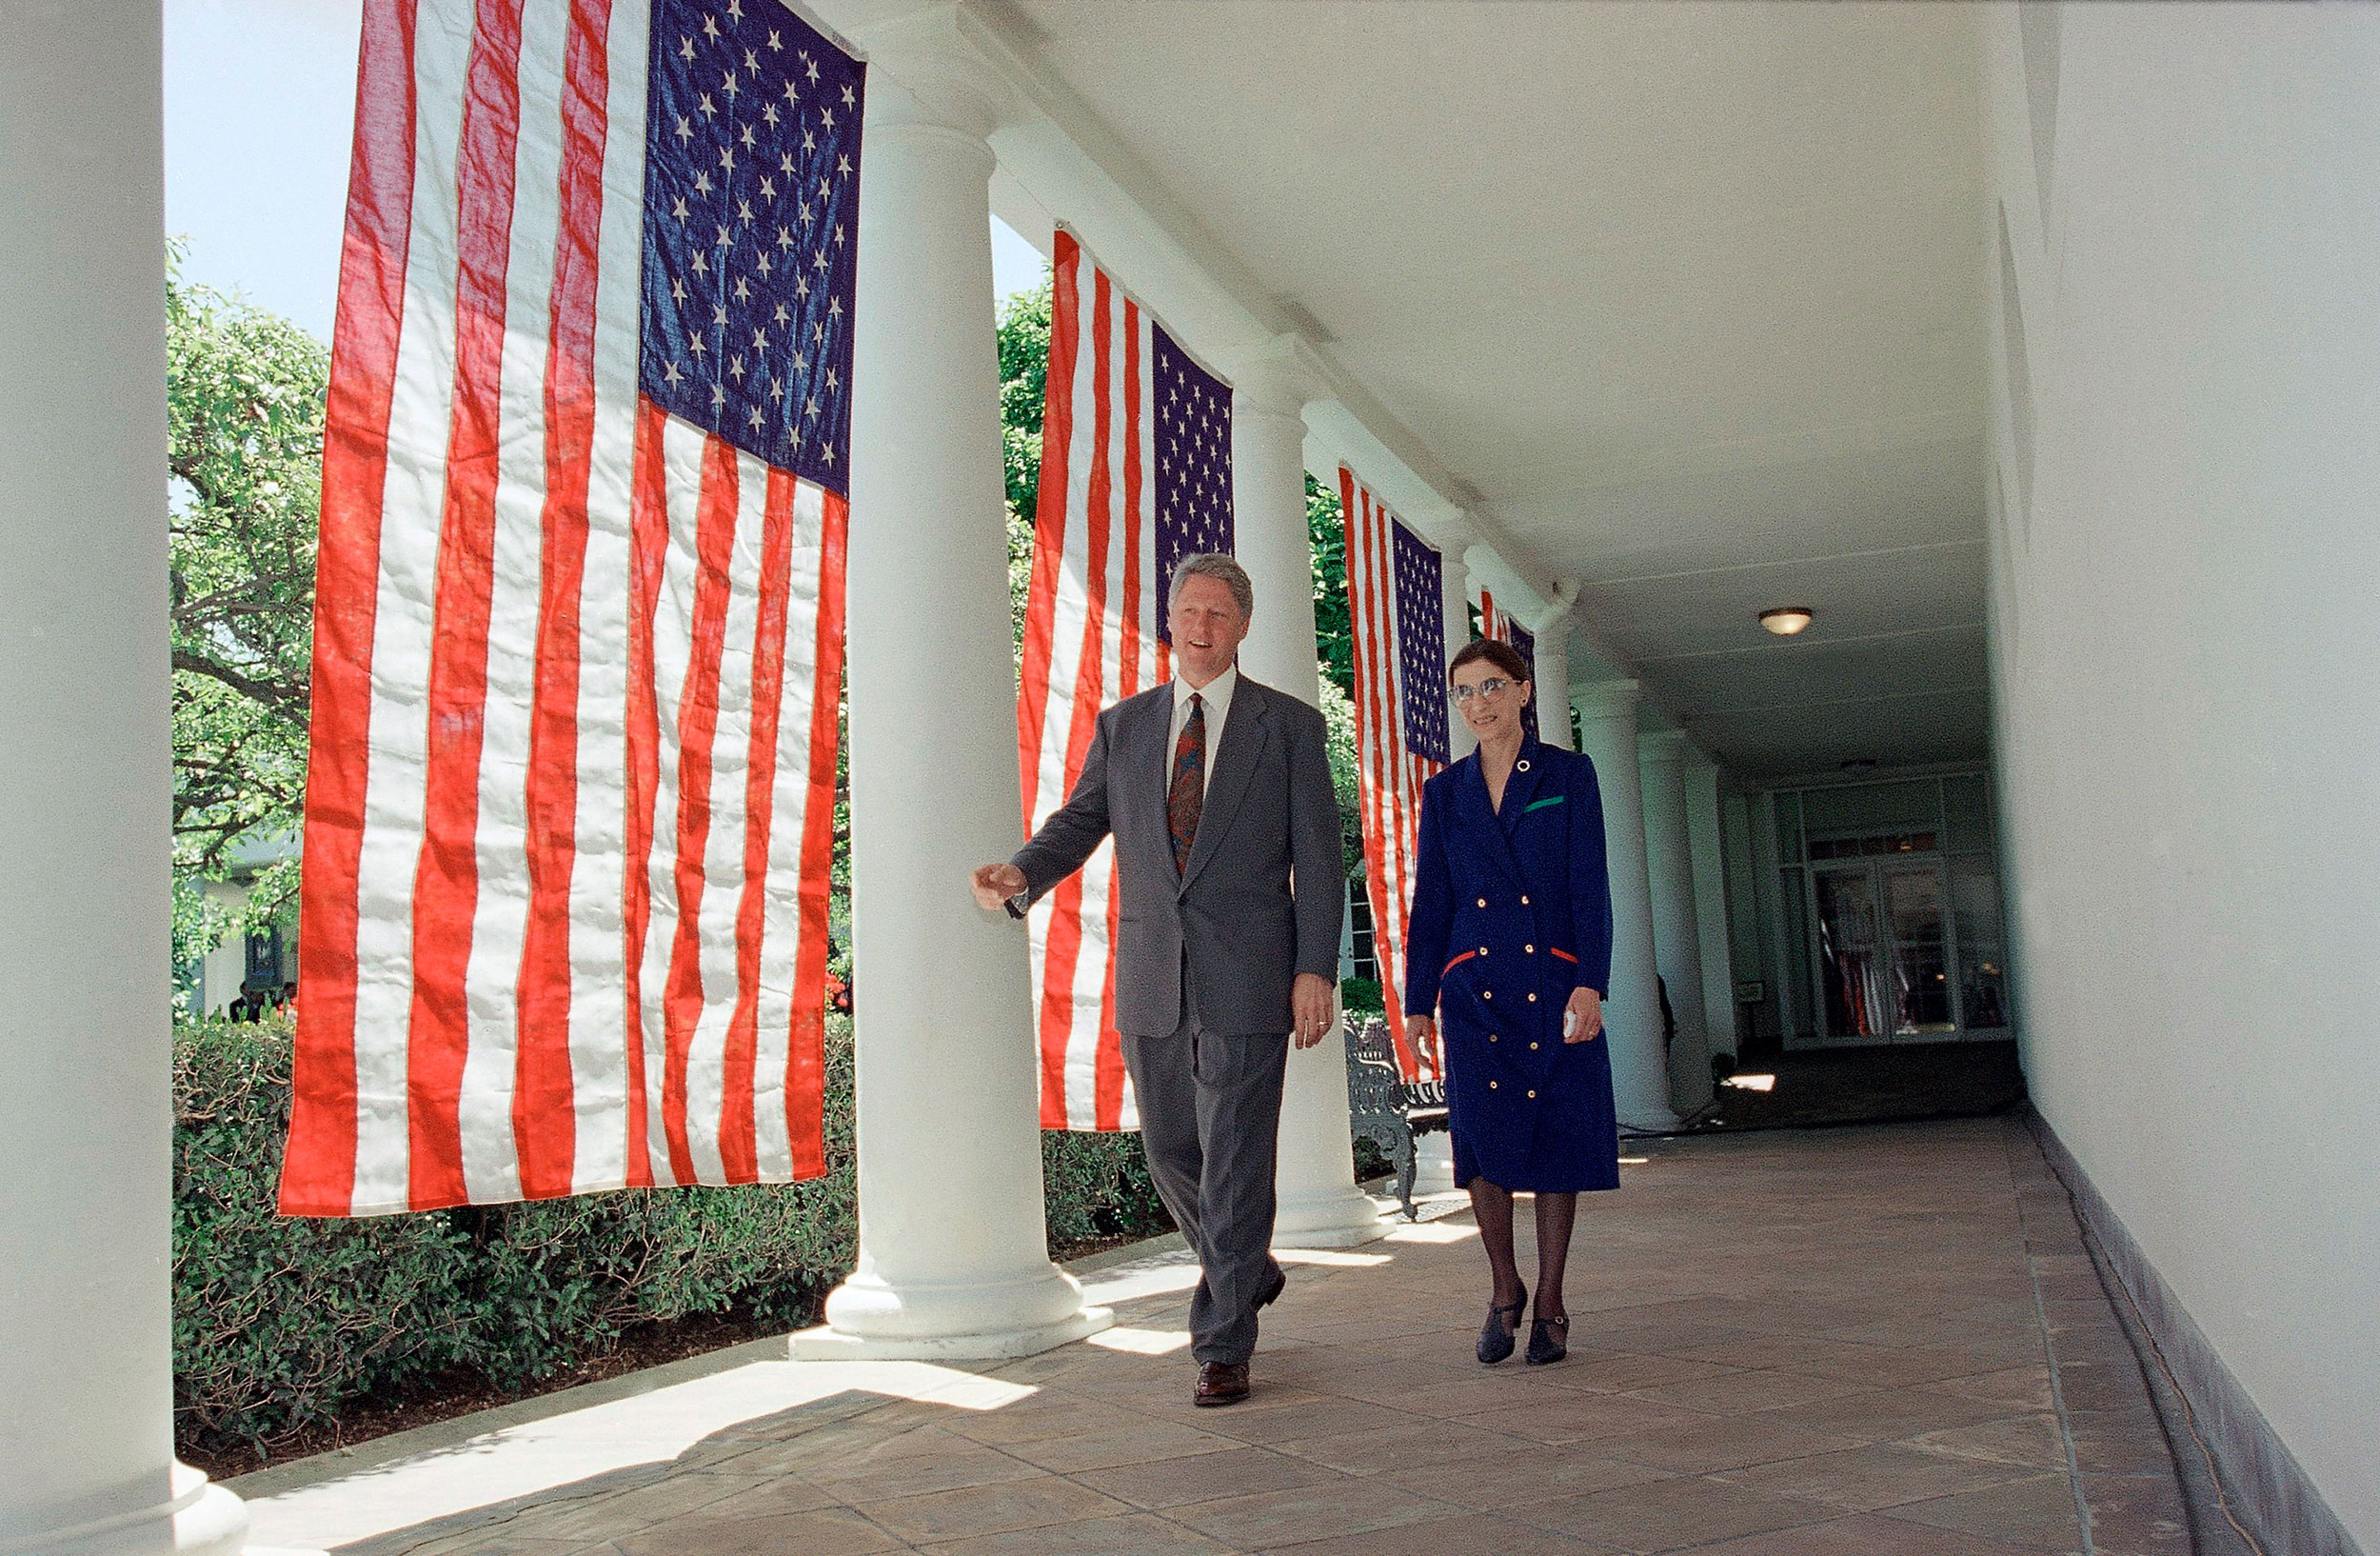 President Bill Clinton and Ruth Bader Ginsburg walk along the Colonnade of the White House on June 14, 1993.